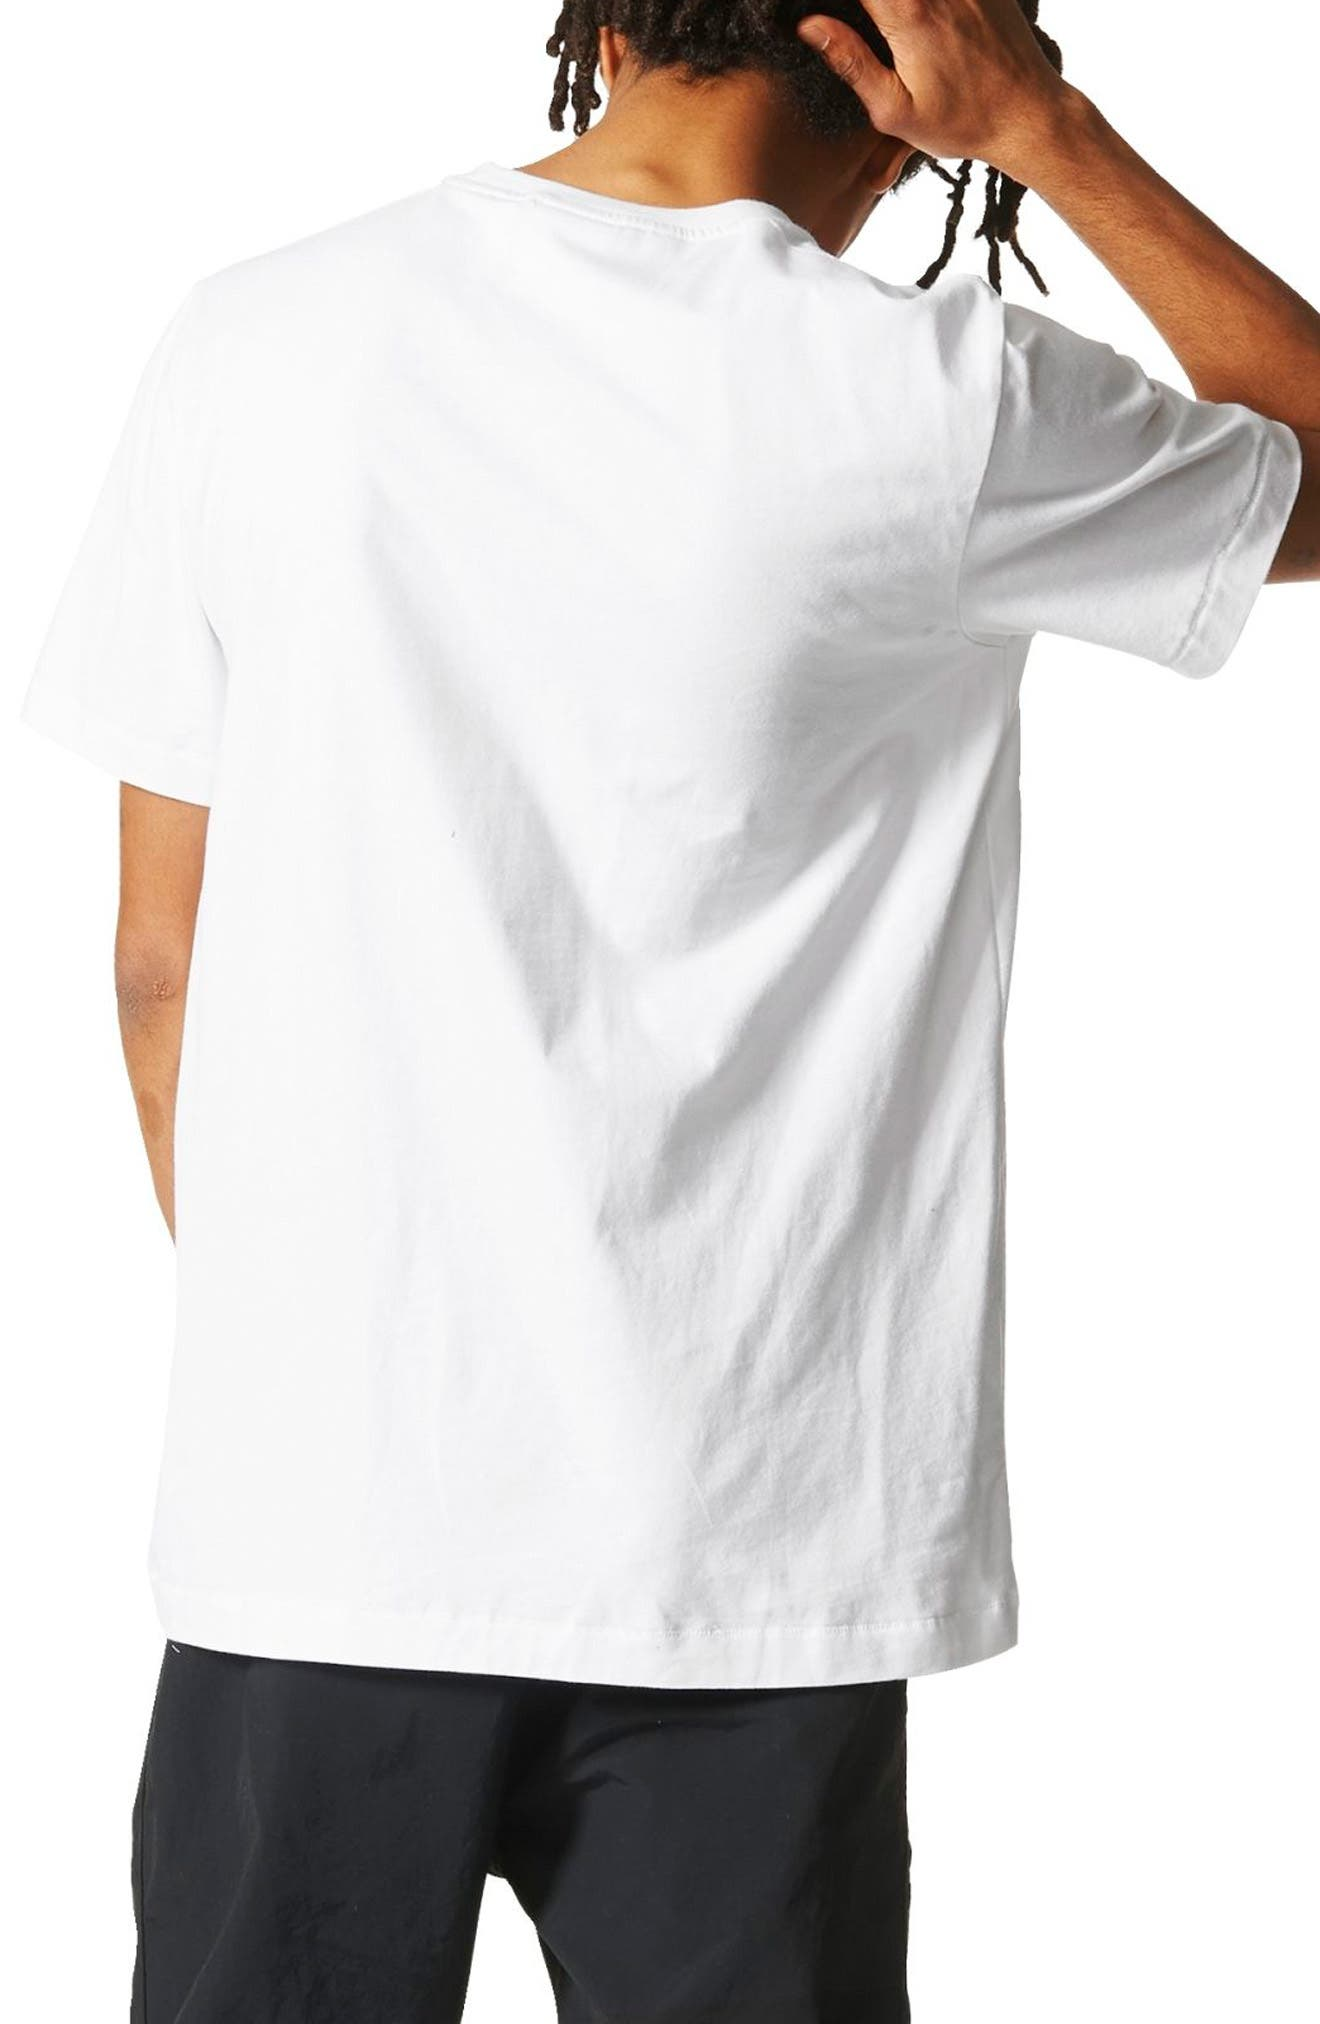 NMD T-Shirt,                             Alternate thumbnail 2, color,                             White